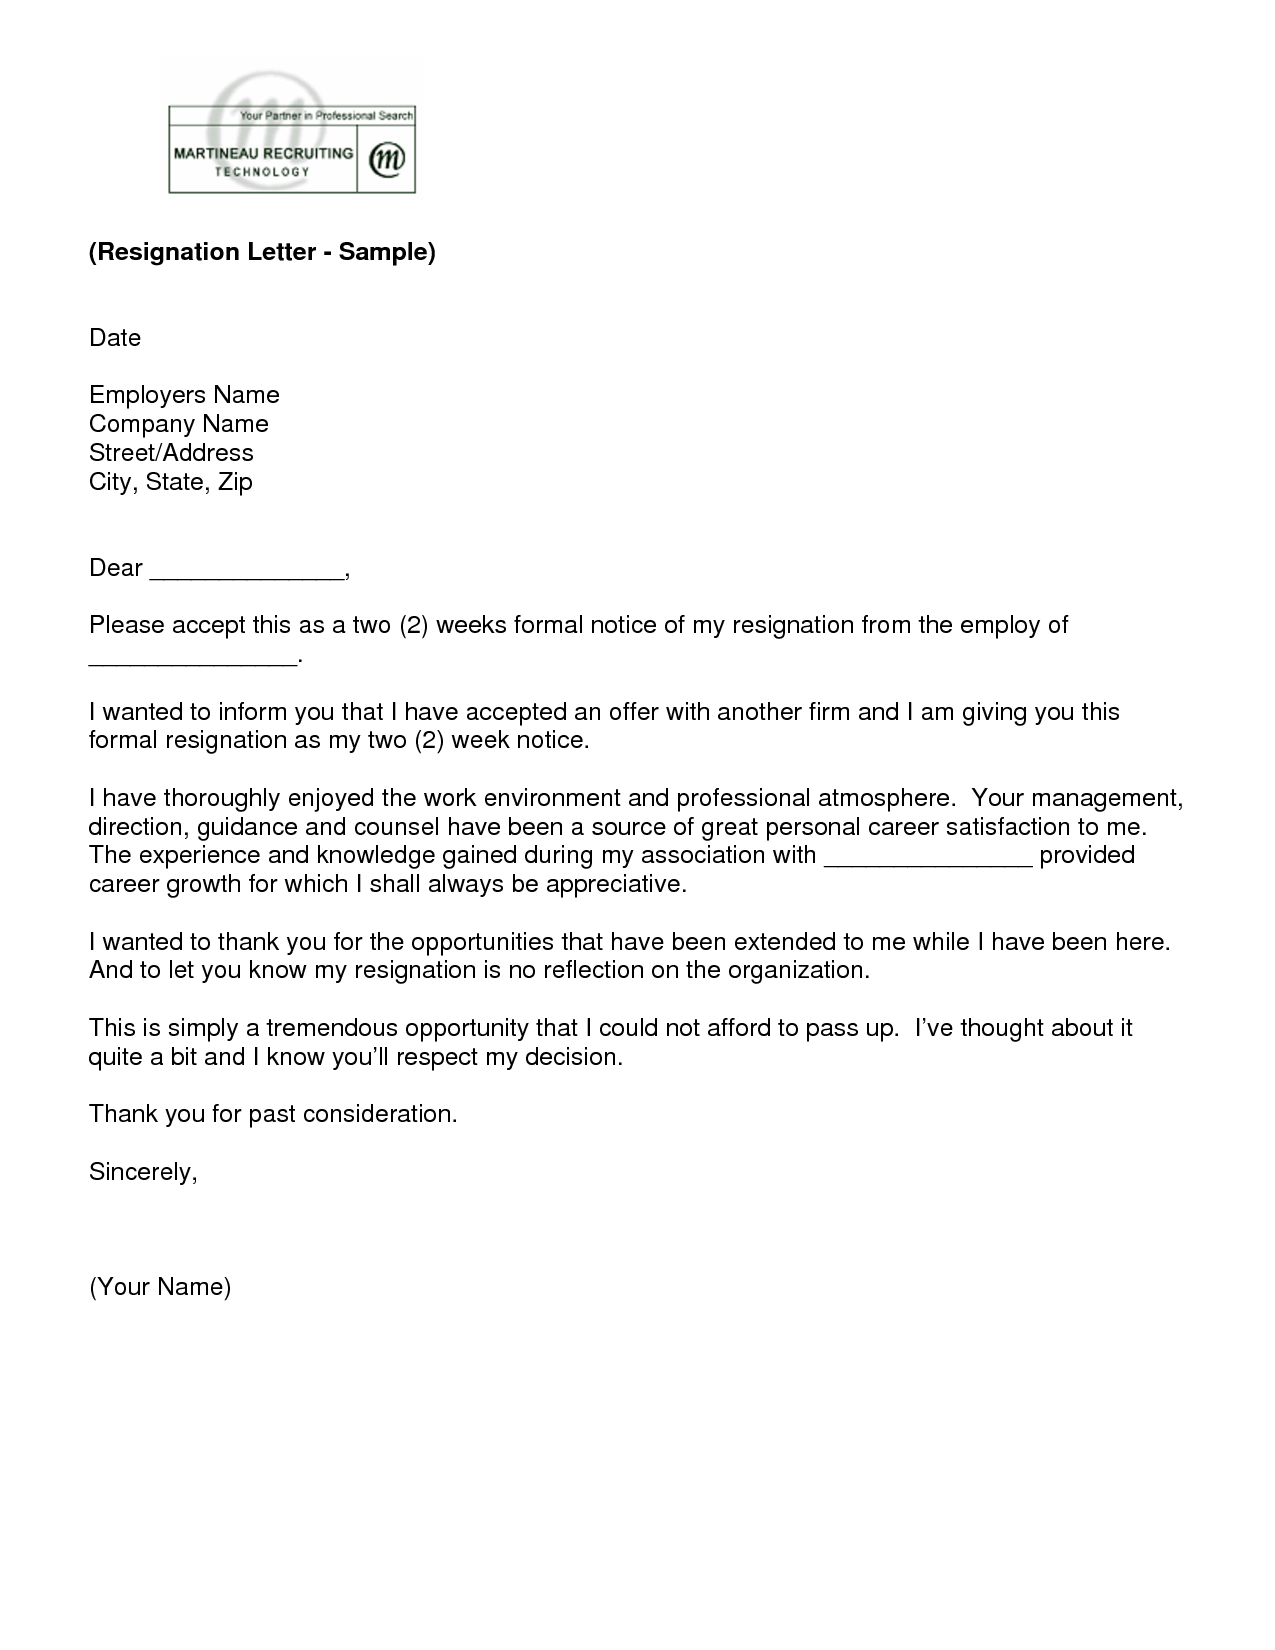 40 Two Weeks Notice Letters & Resignation Letter Templates ...